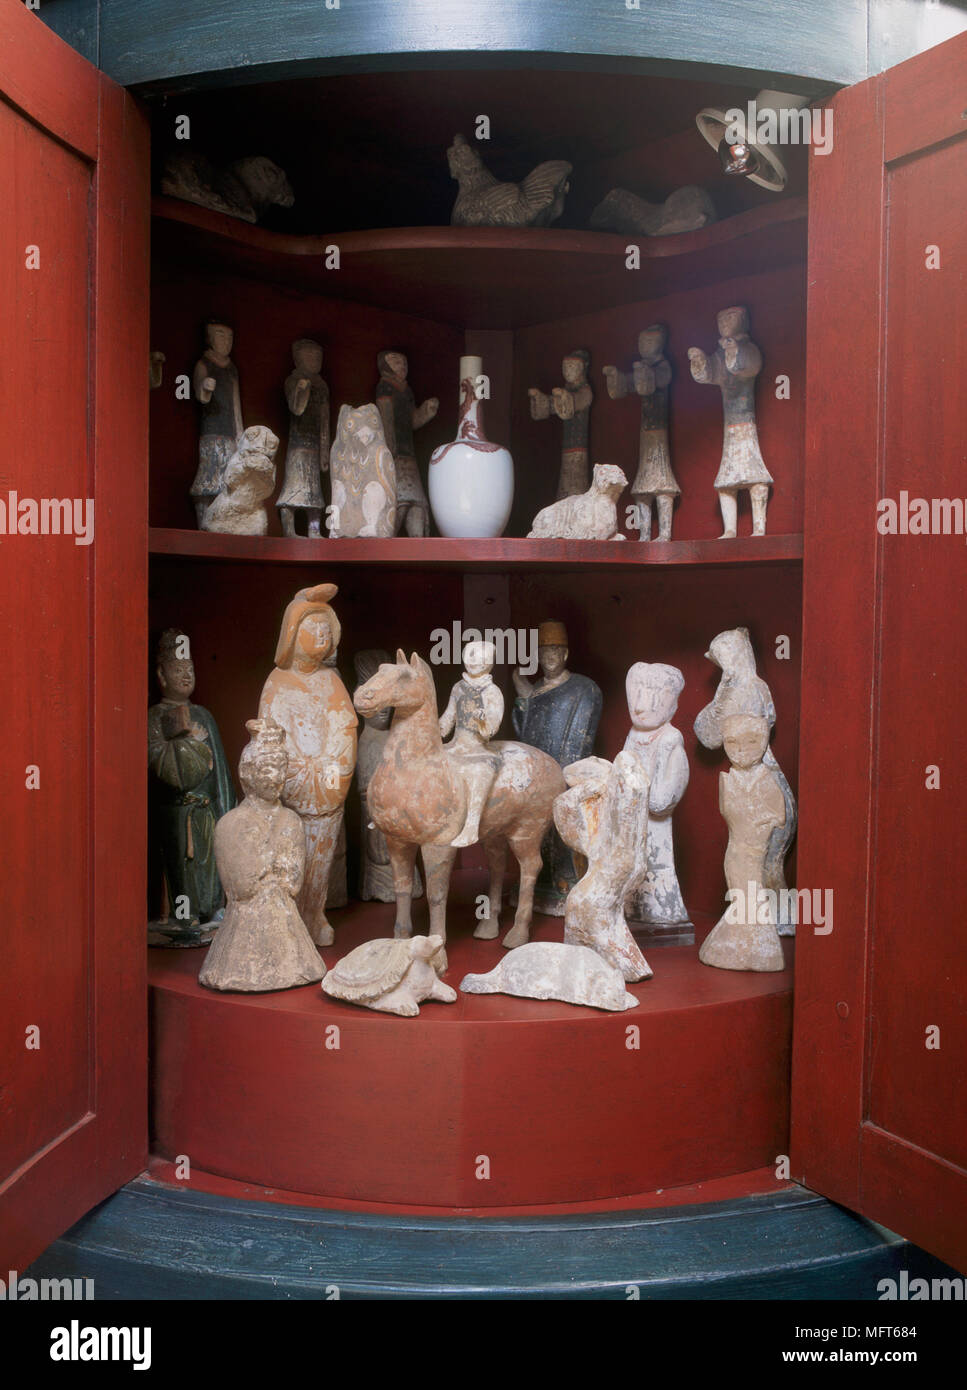 A Detail Of A Painted Red Display Cabinet With A Collection Of Pottery  Figurines, Statues And Antiquities